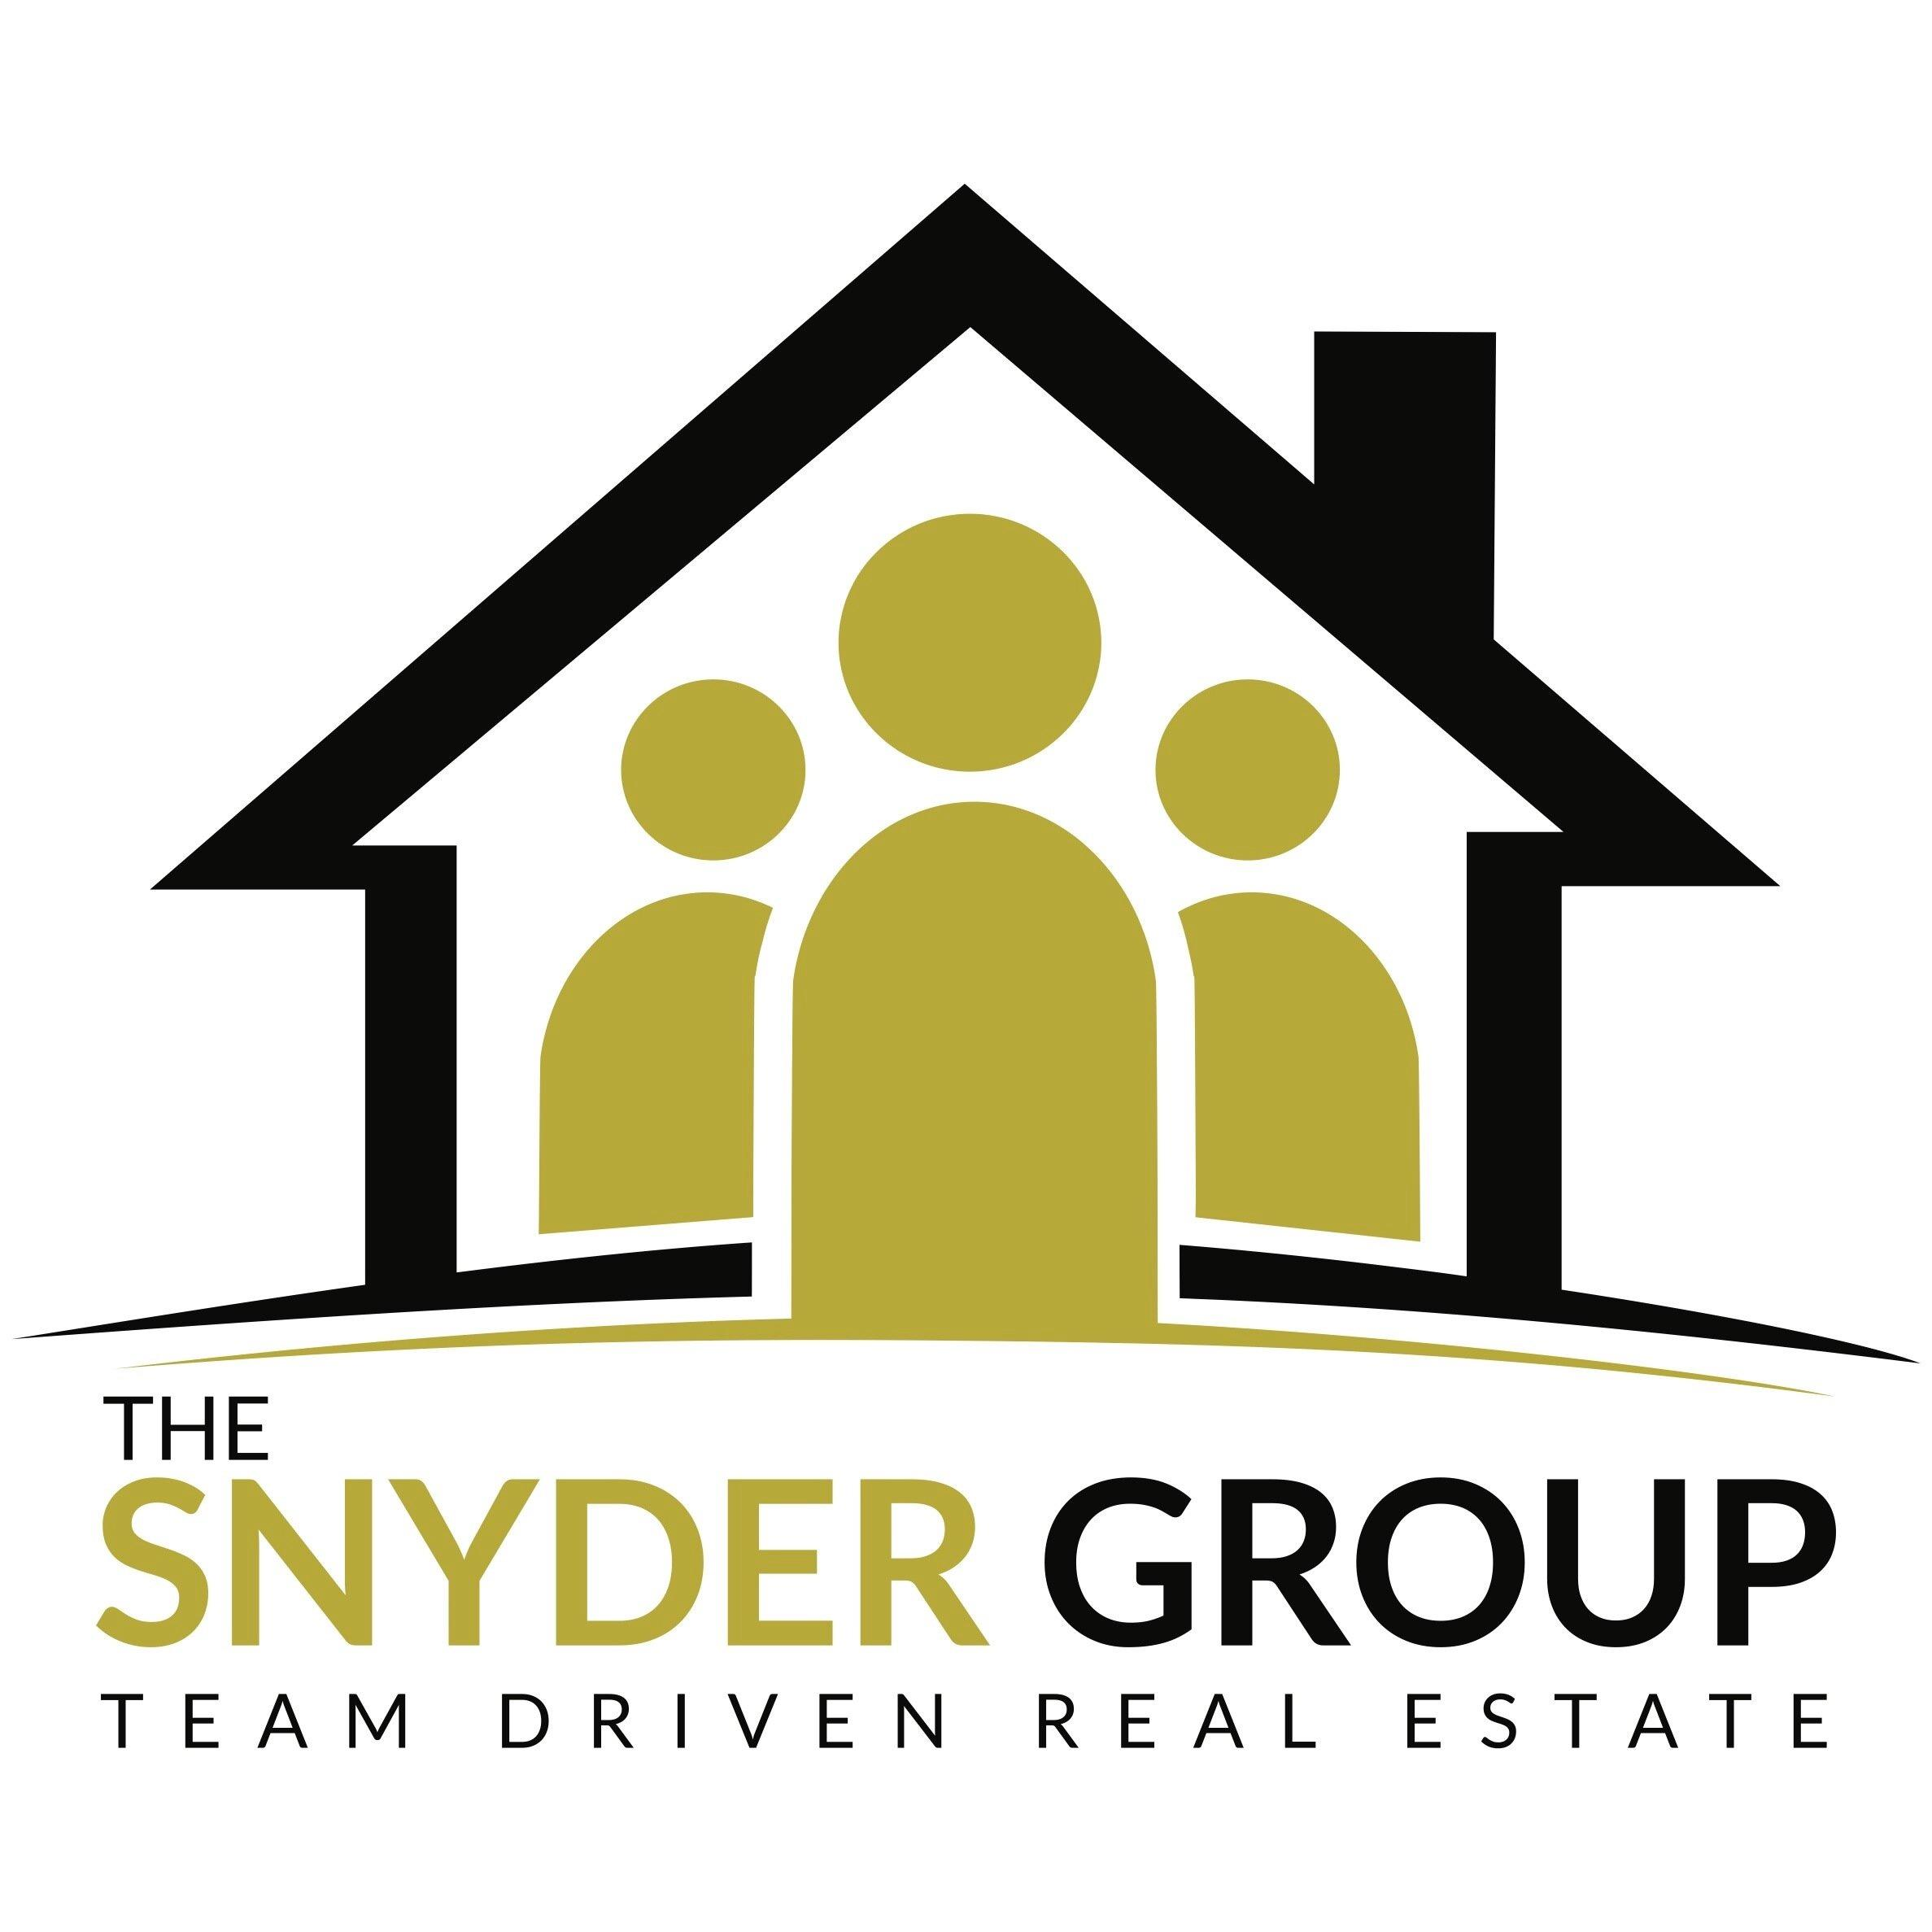 The Snyder Group